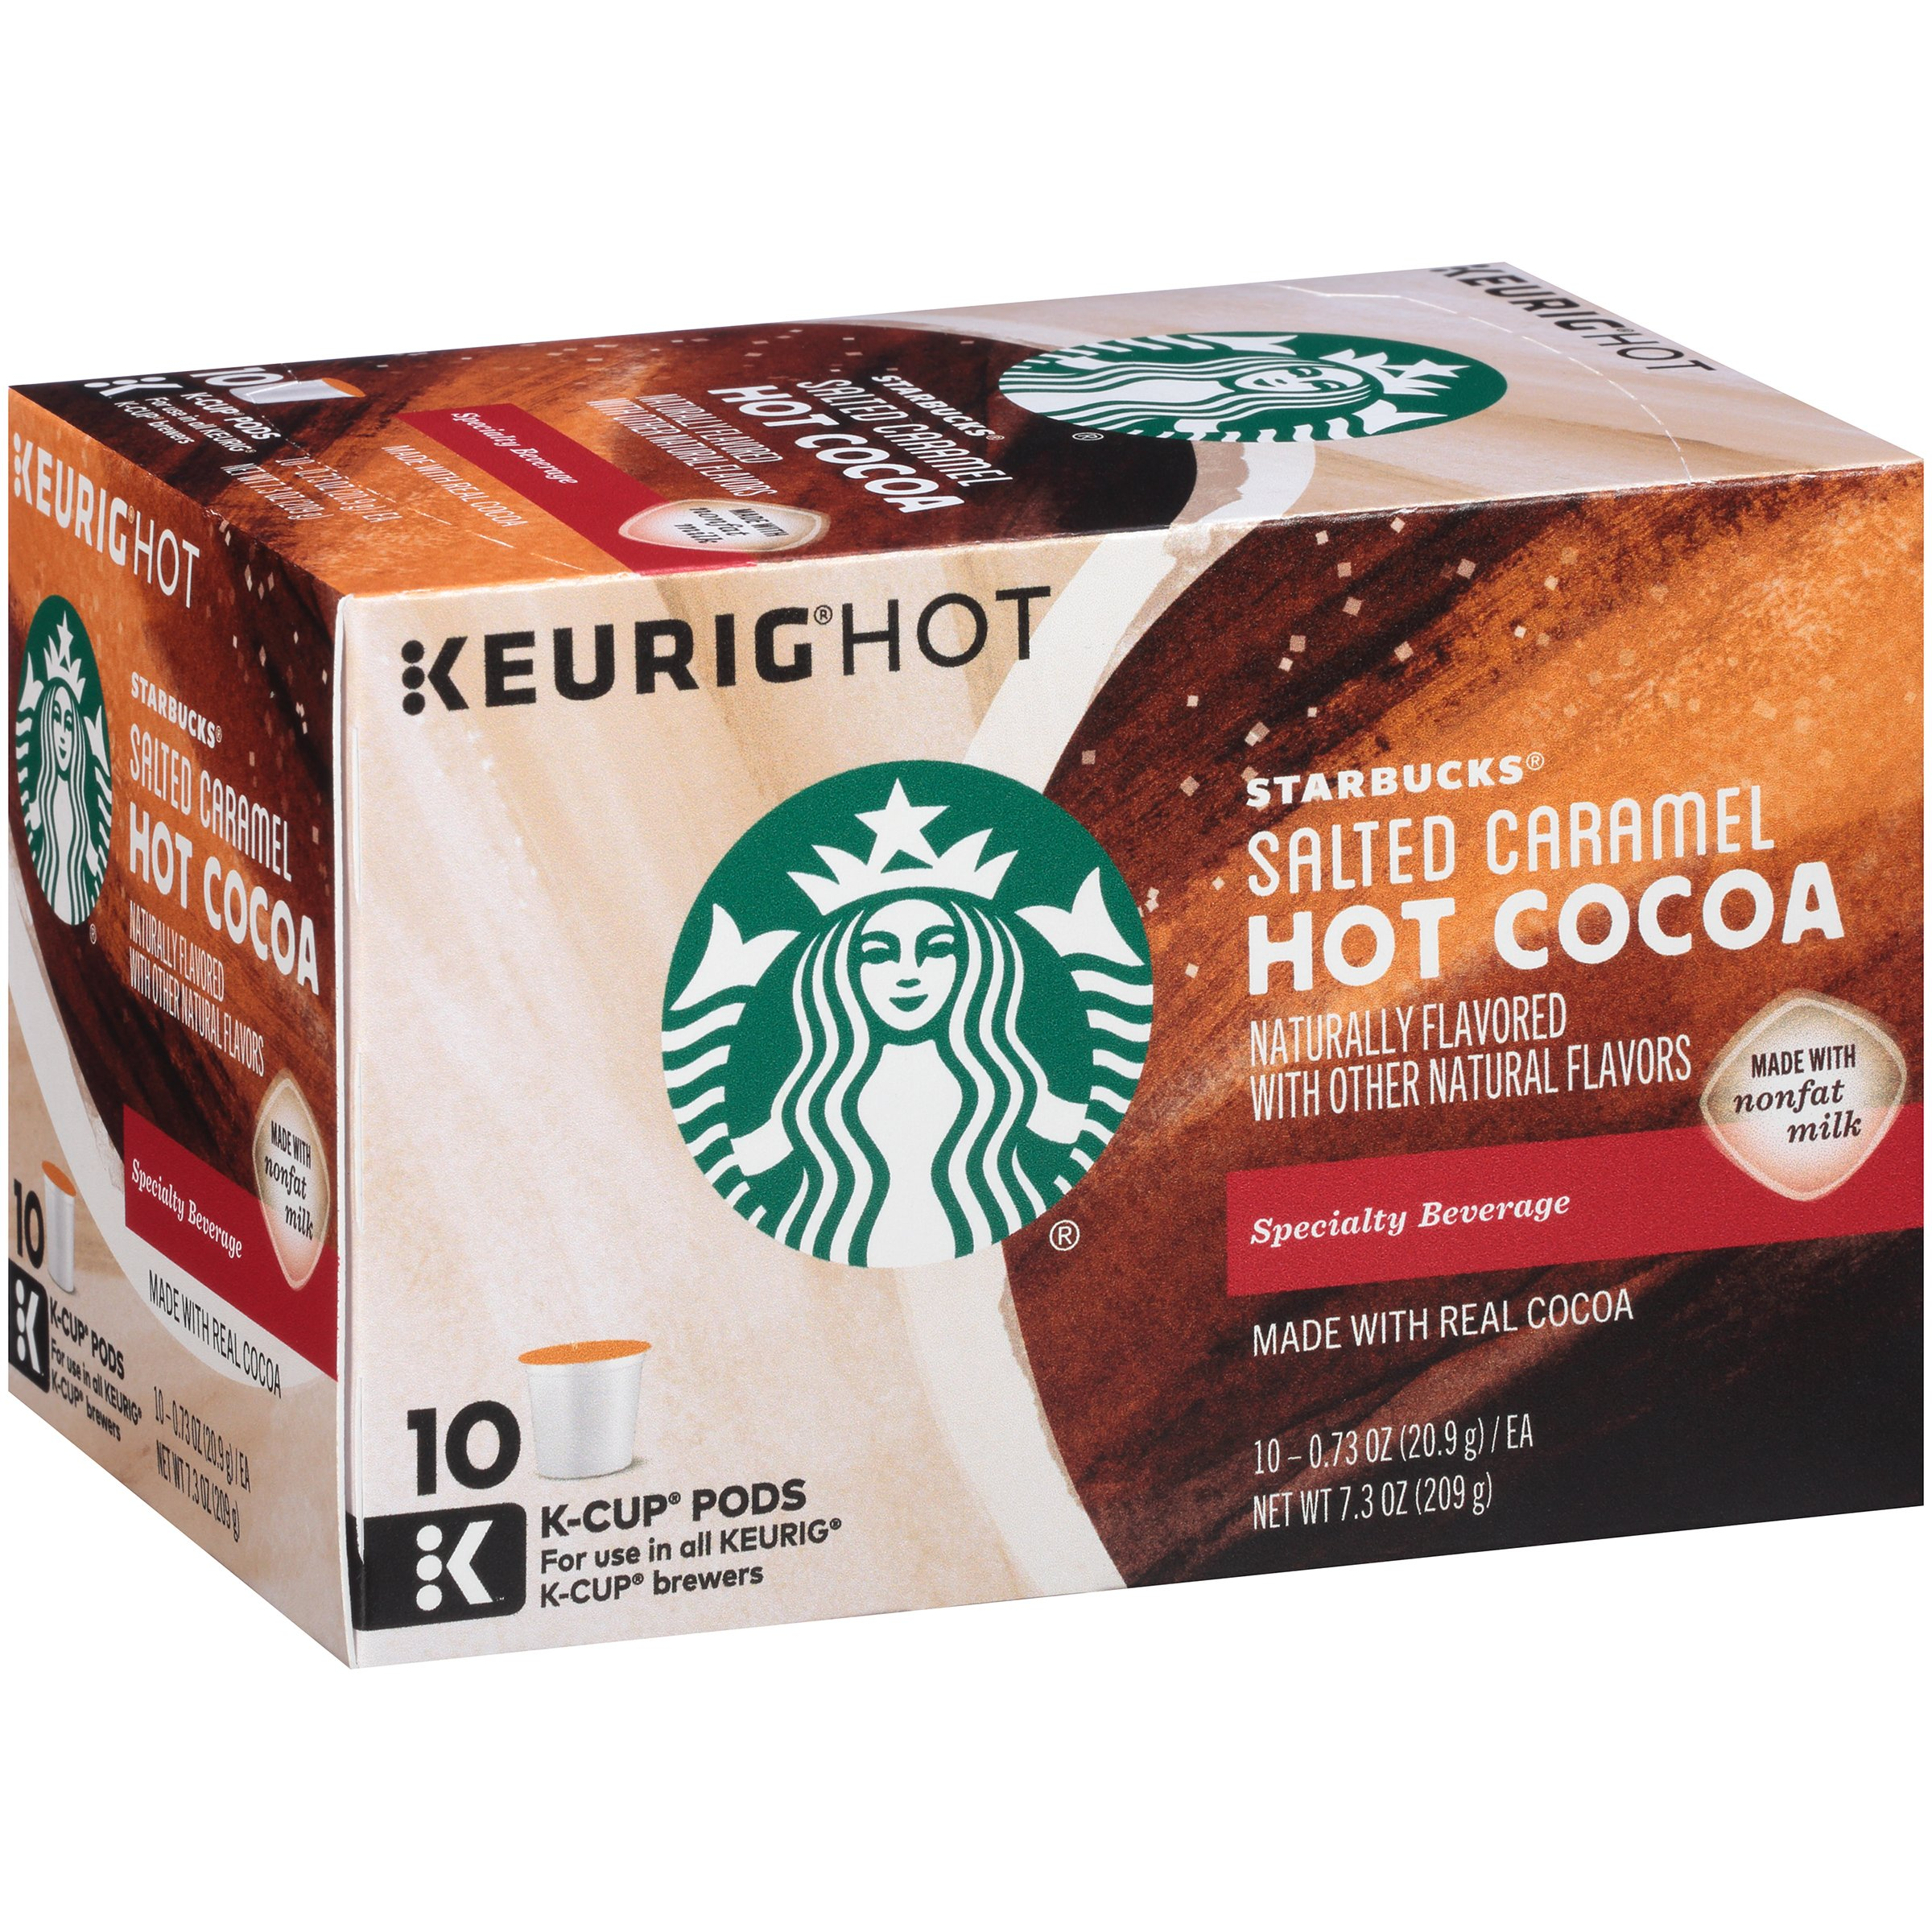 Keurig Starbucks Salted Caramel Hot Cocoa K-Cups, 0.73 oz, 10 count by STARBUCKS COFFEE COMPANY